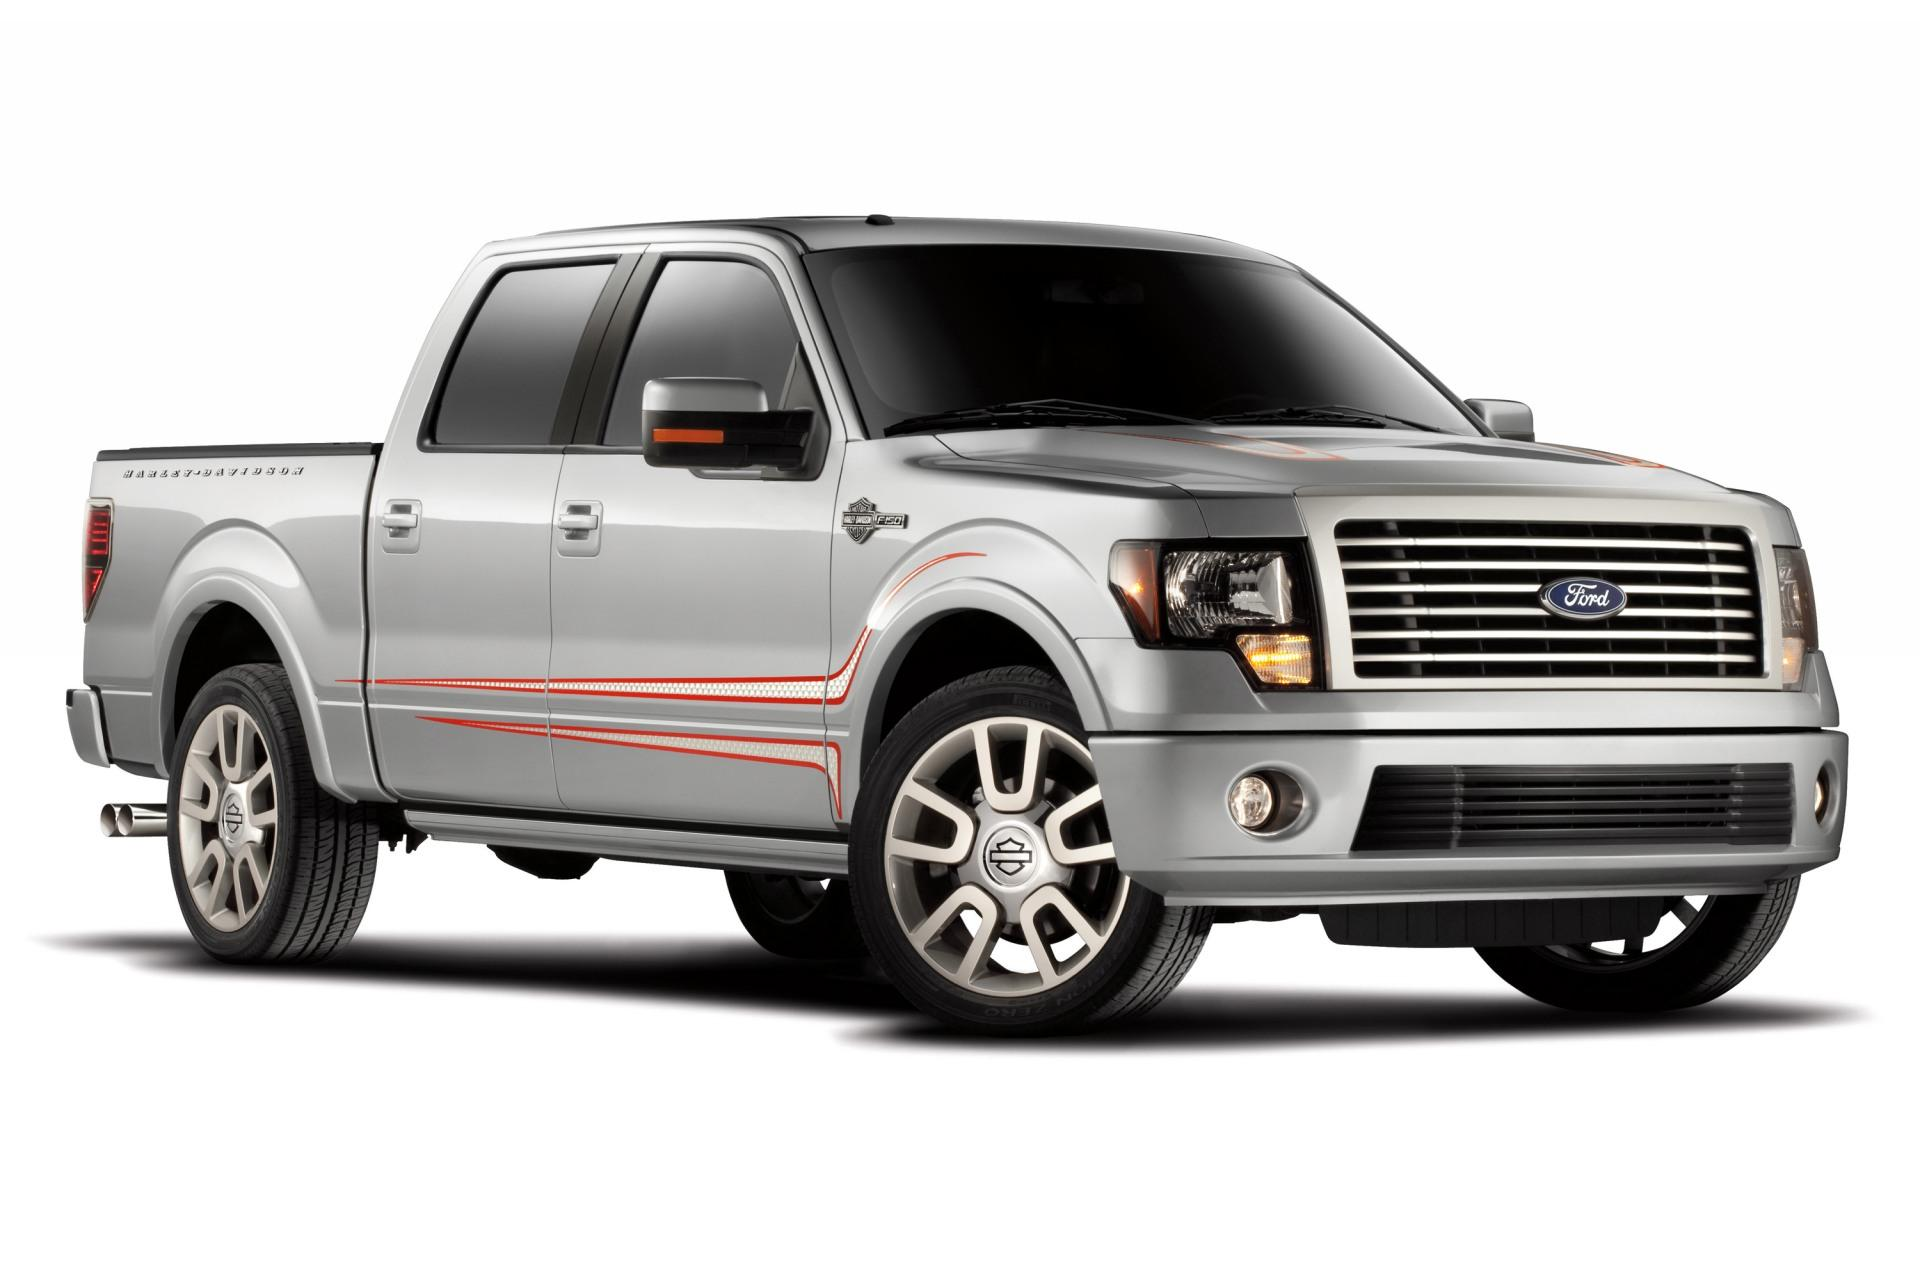 2011 ford harley davidson f 150 news and information for Newspaper wallpaper for sale